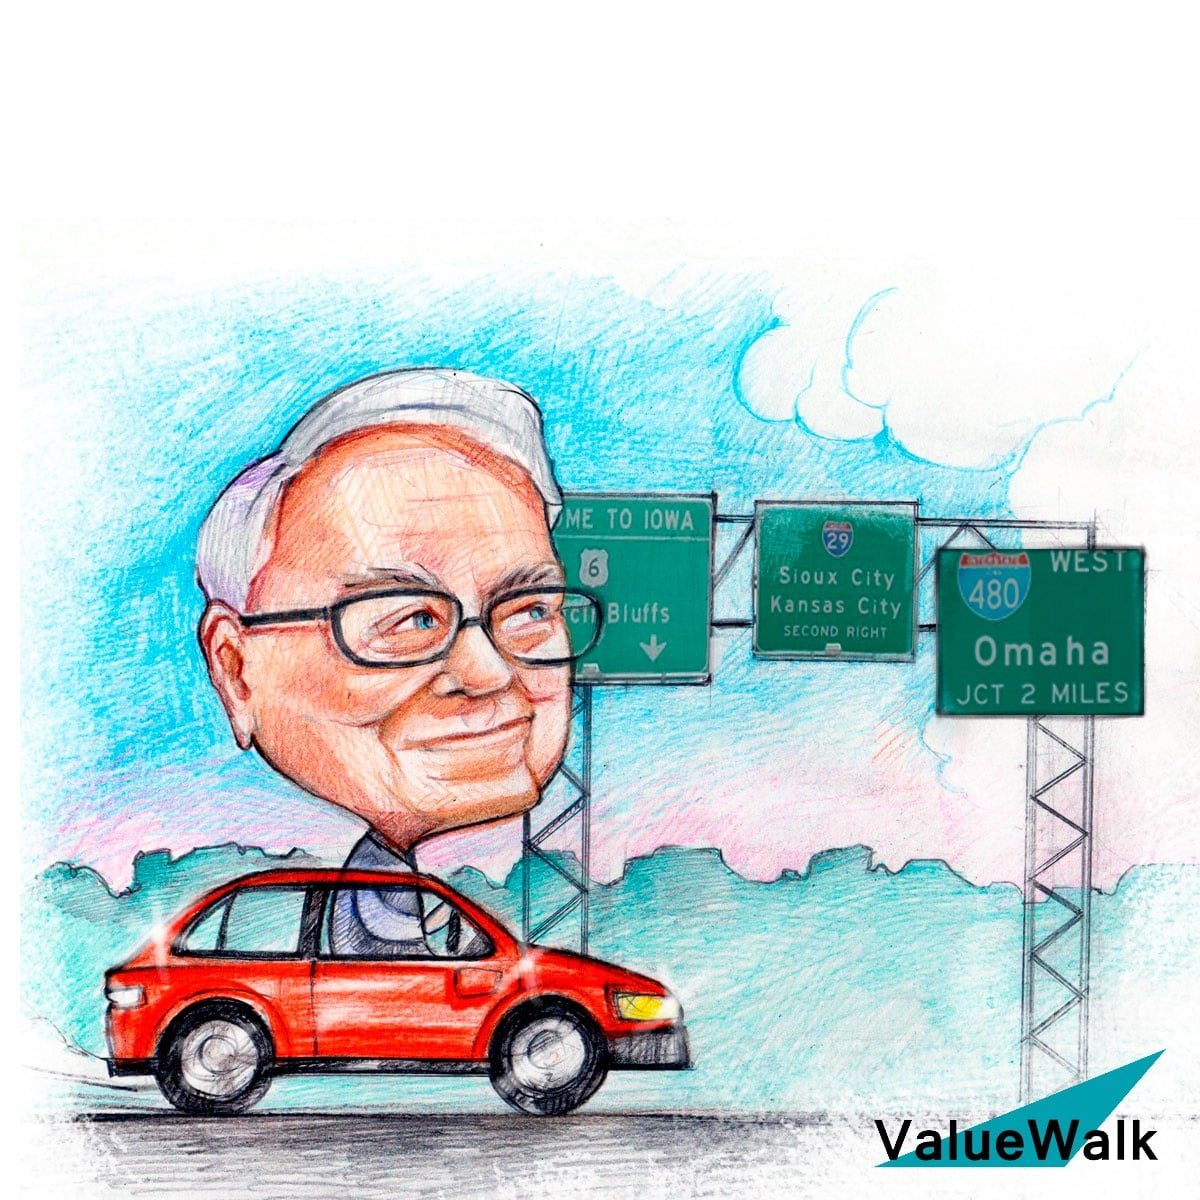 NASDAQ:AAPL shares of apple warren buffett index funds Warren Buffett estimate of intrinsic value